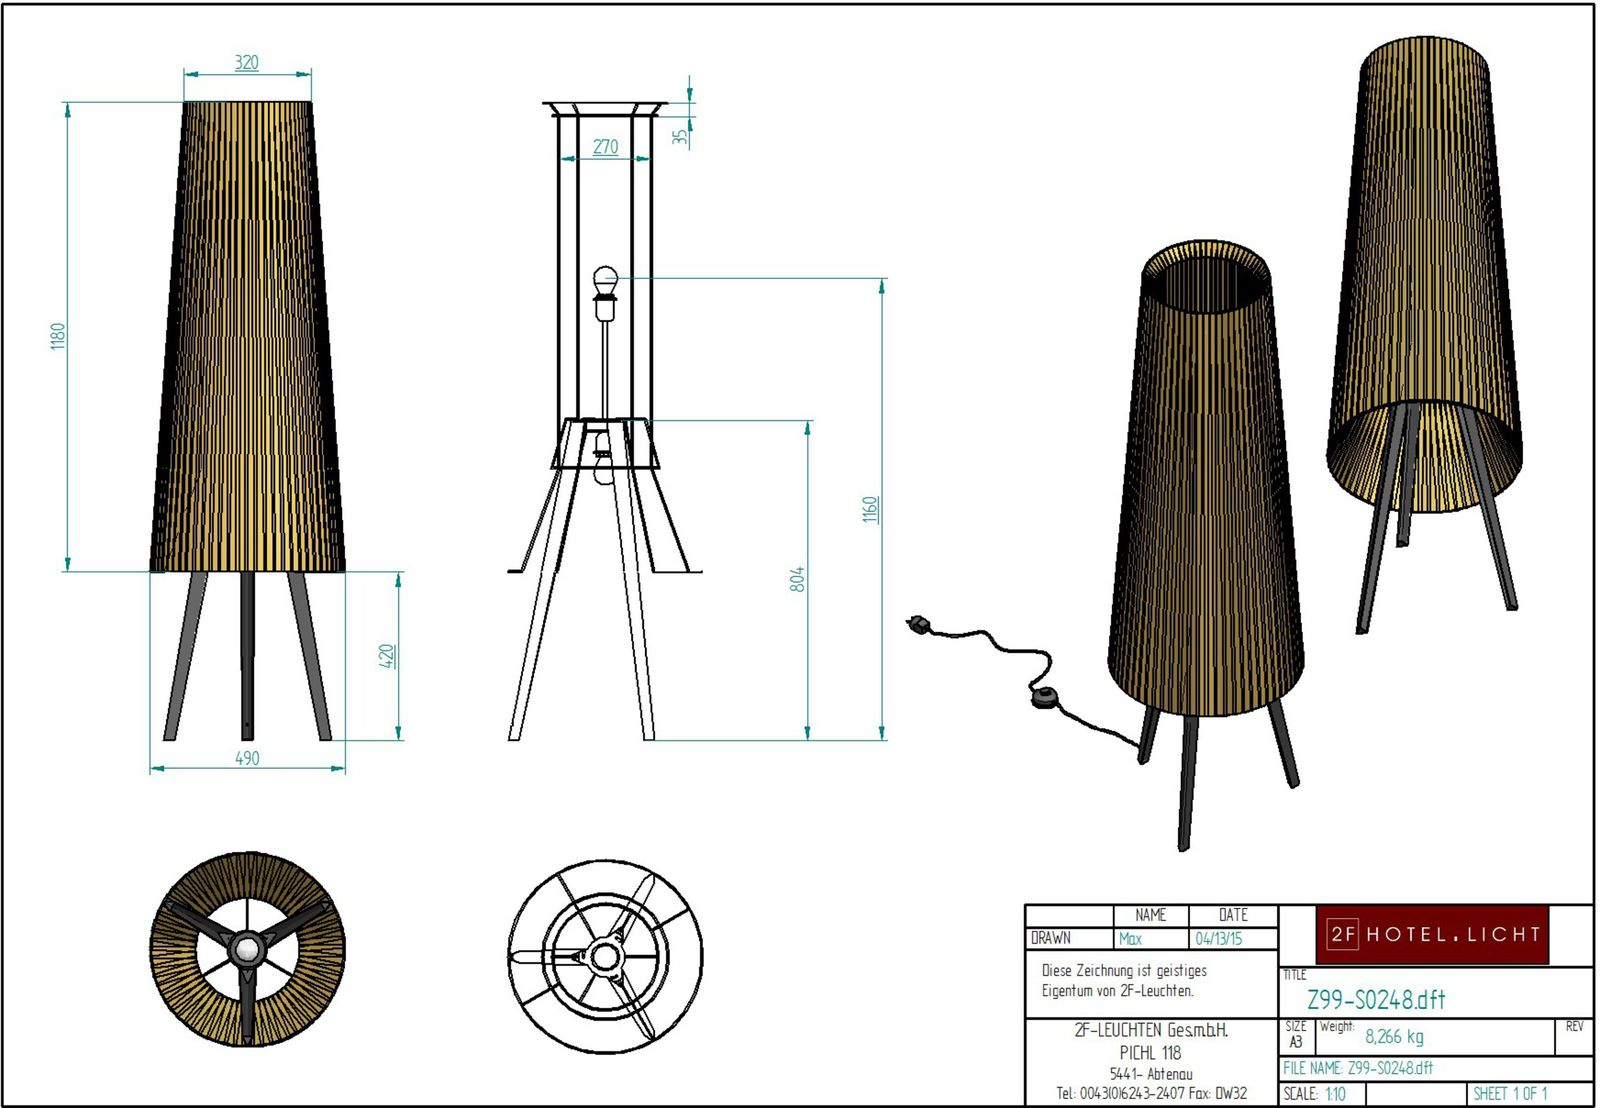 Floor lamp, L:Ø490mm, H:1600mm, surface: Metal black, techn. Data: 2xE27, 42W, cable color: black